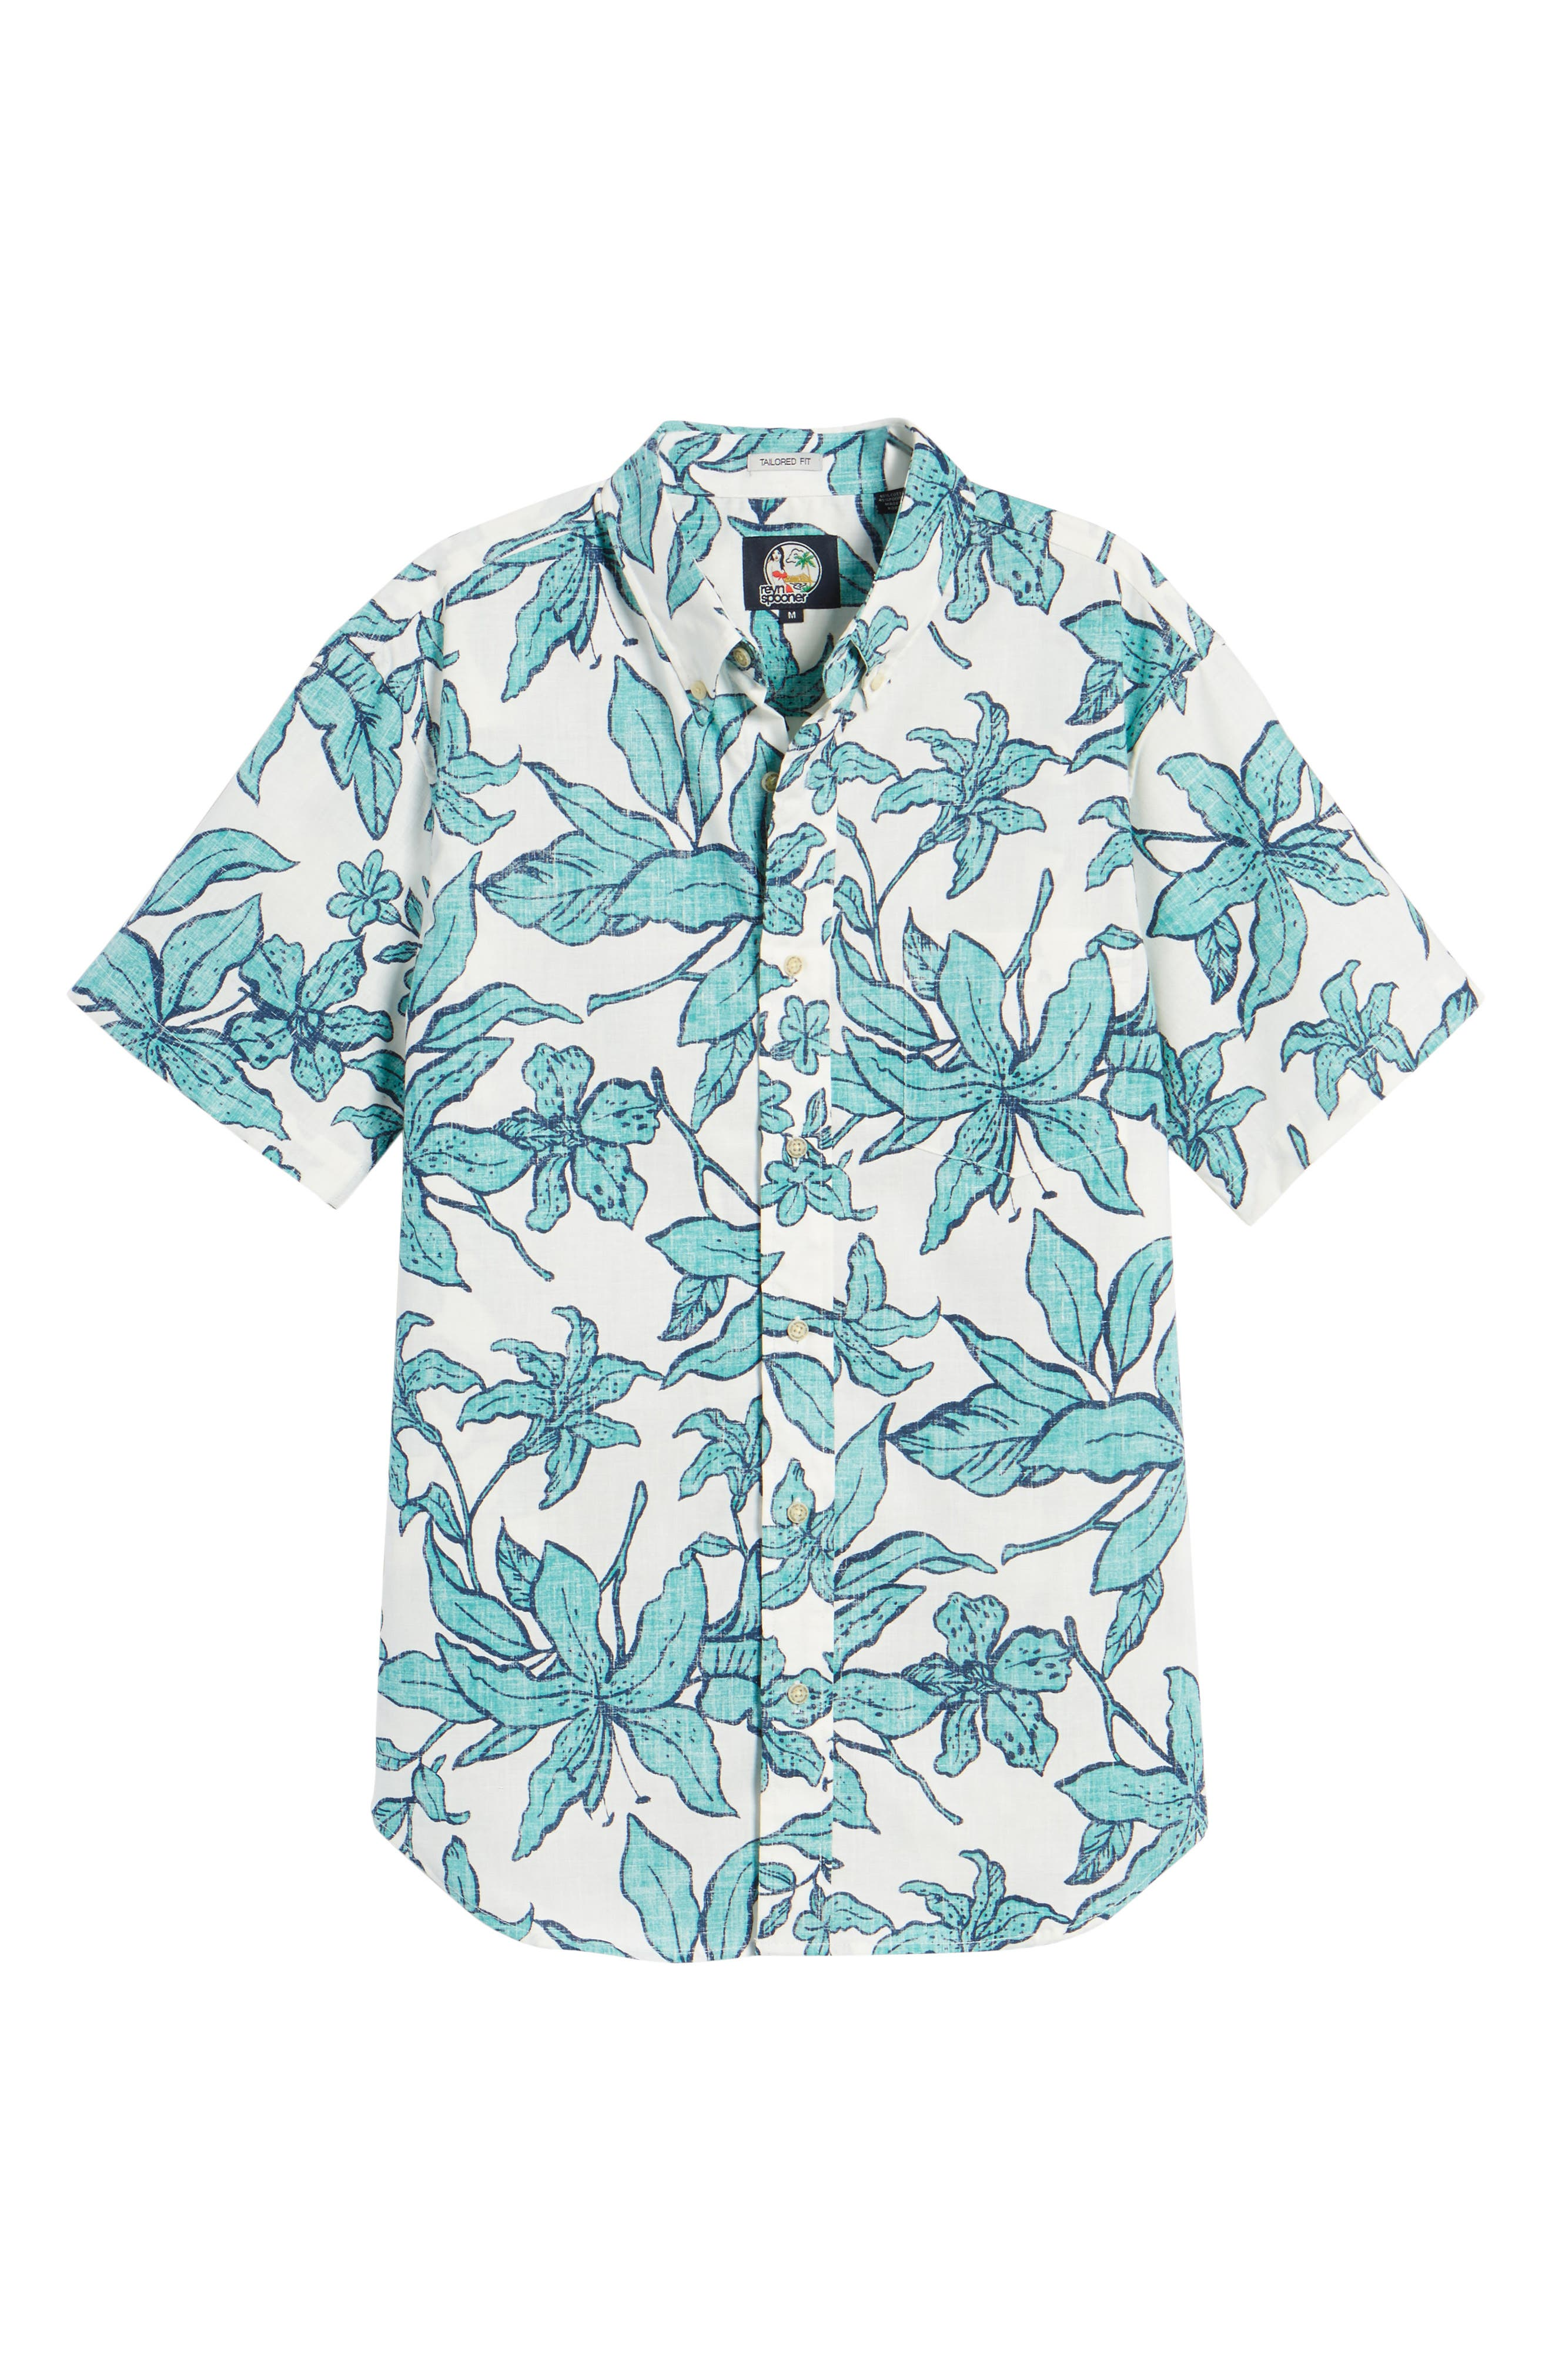 Luhiehu Tailored Fit Print Camp Shirt,                             Alternate thumbnail 6, color,                             Natural